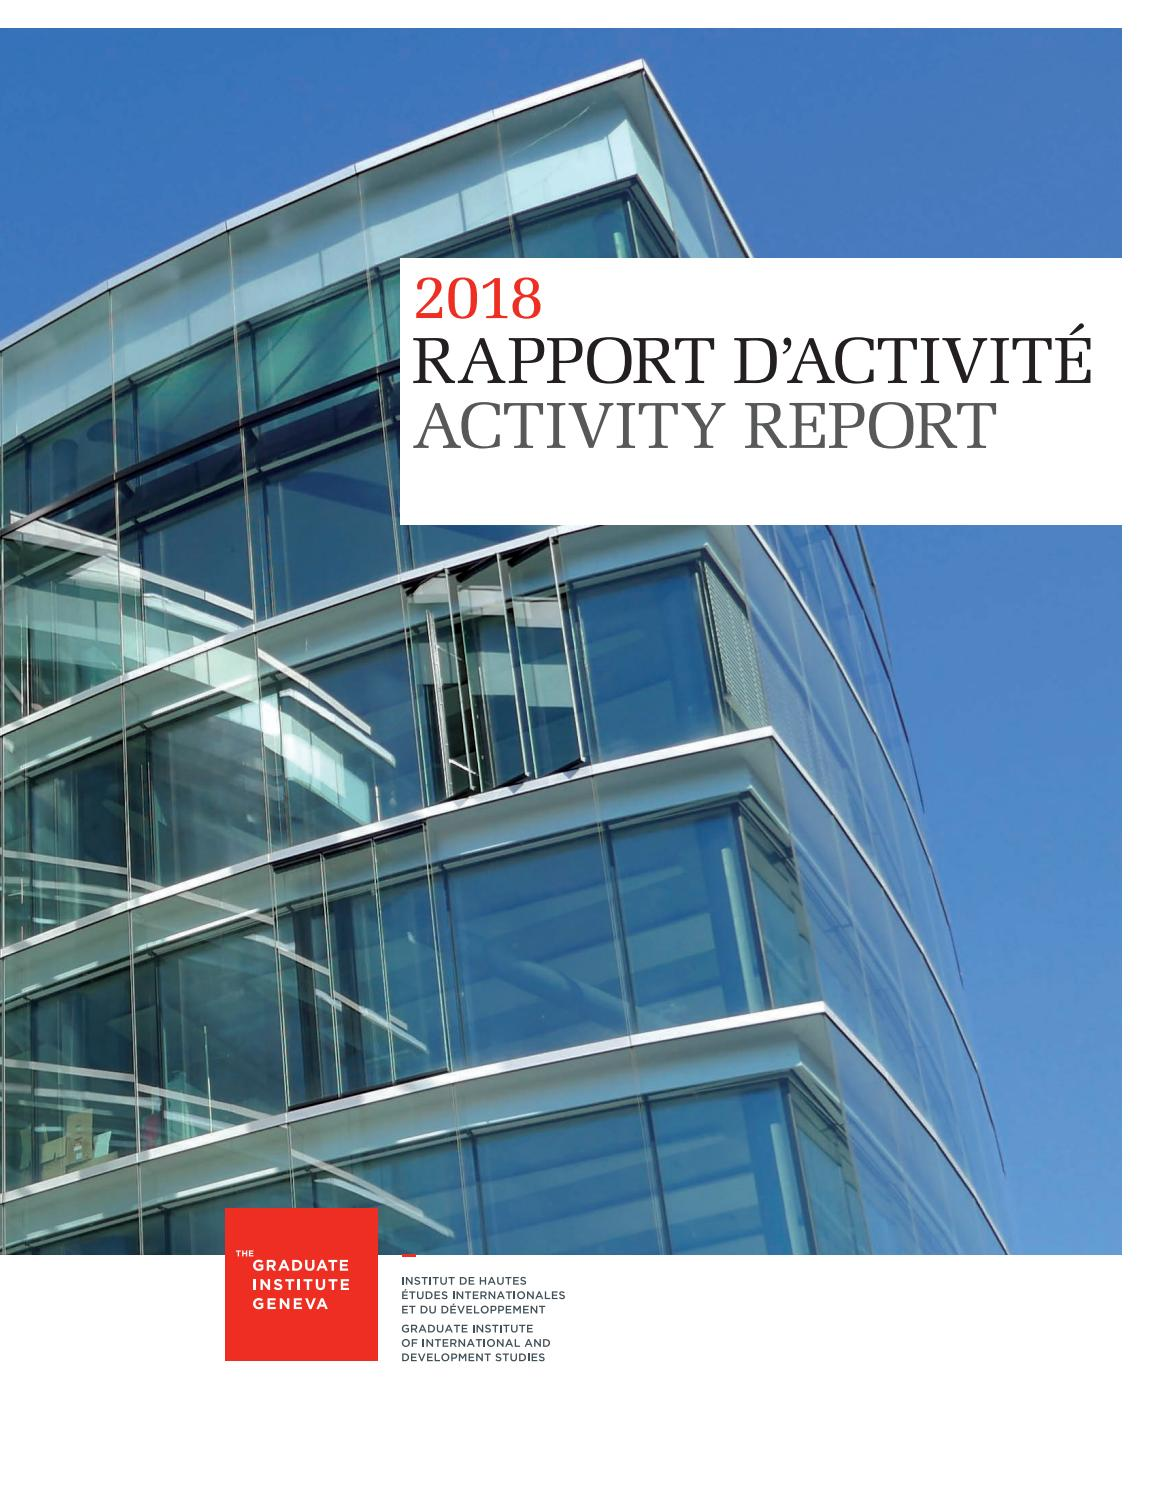 Rapport D Activite I Activity Report 2018 By The Graduate